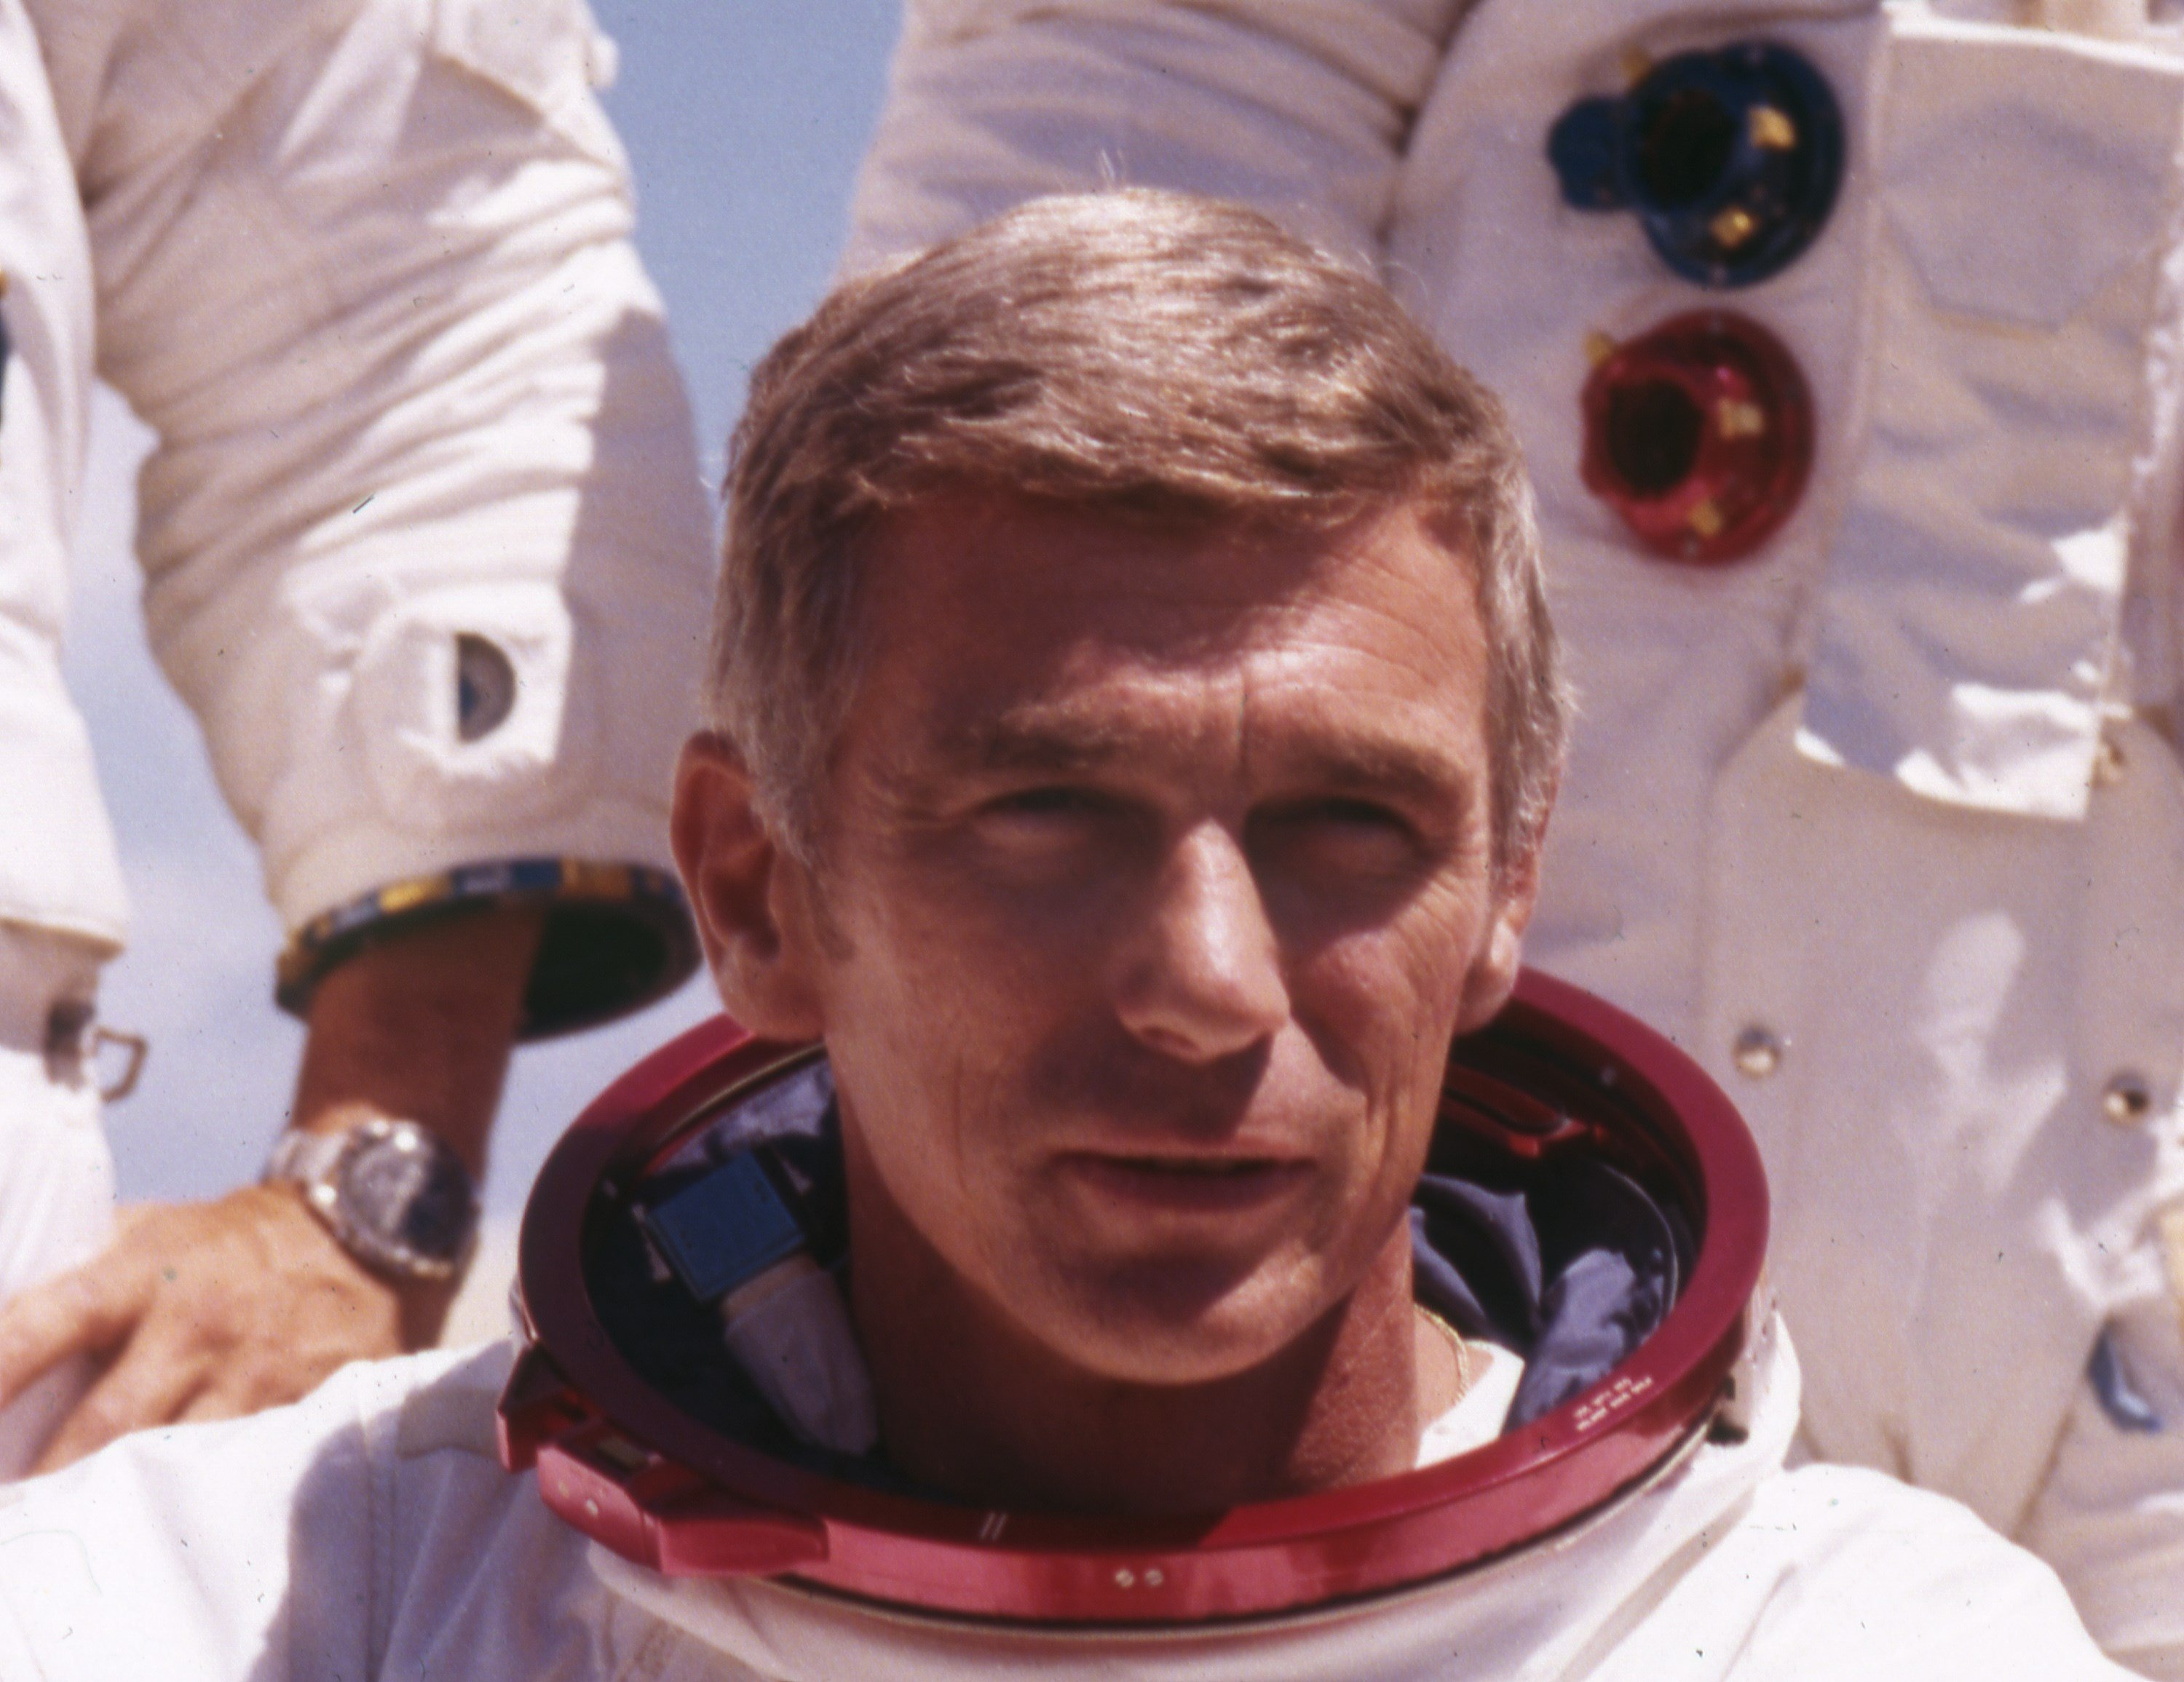 U.S. American navy commander and astronaut, Eugene Cernan, is pictured in his space suit, 1972. (AP Photo)